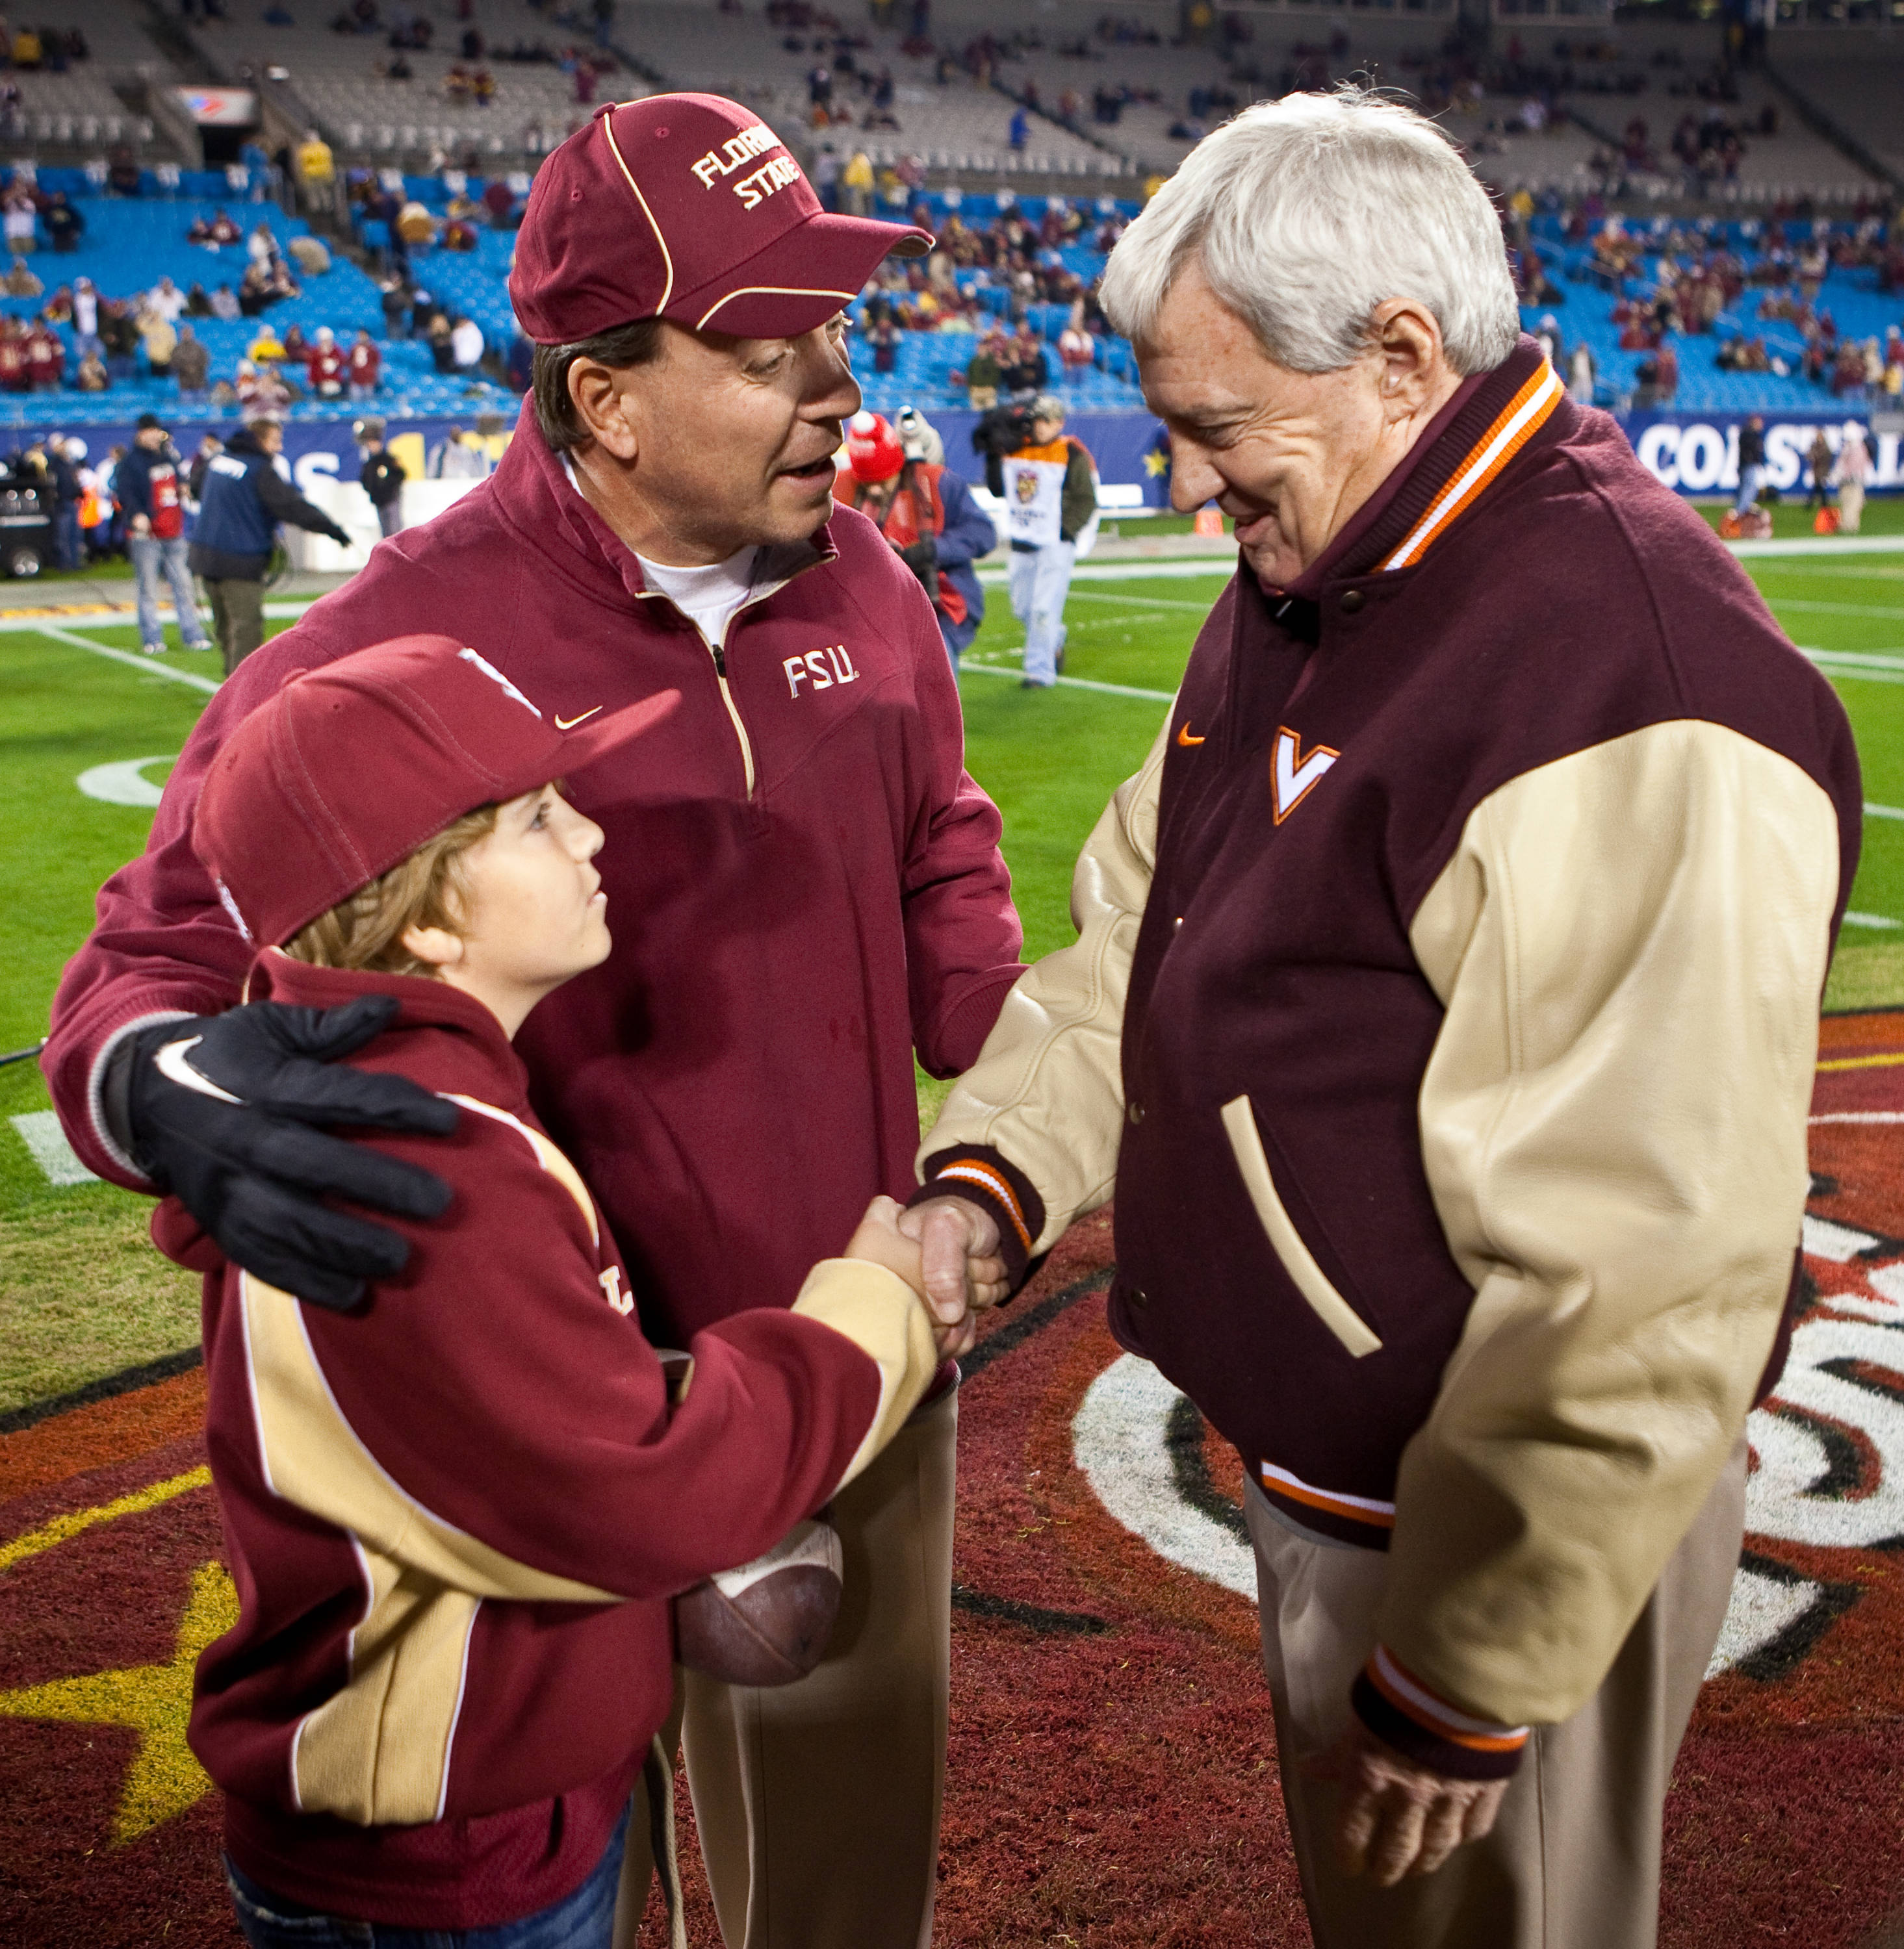 Jimbo and Trey Fisher meet Virginia Tech Head Coach Frank Beamer before the game